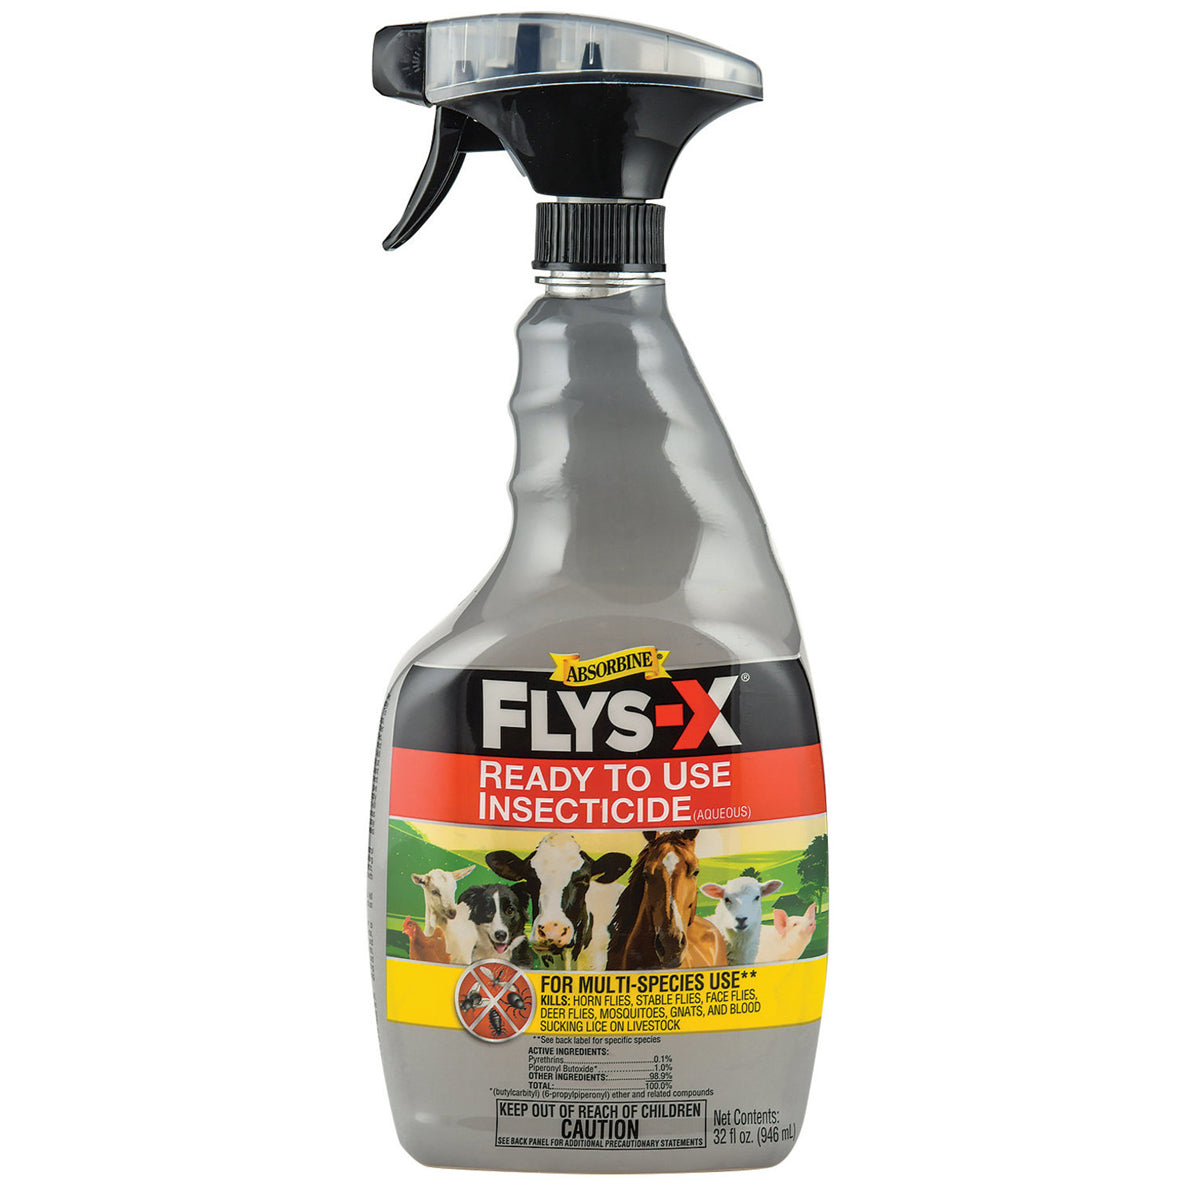 Absorbine Flys X Insecticide Spray